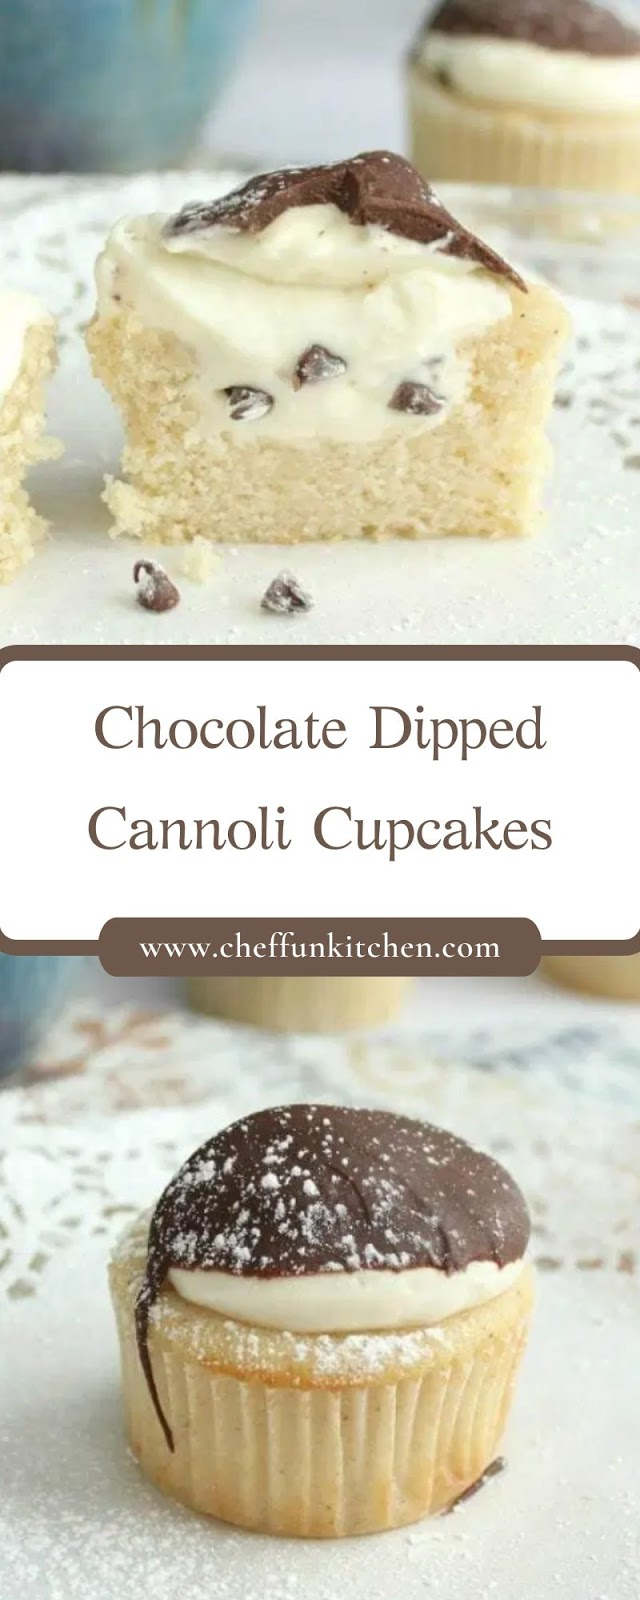 Chocolate Dipped Cannoli Cupcakes